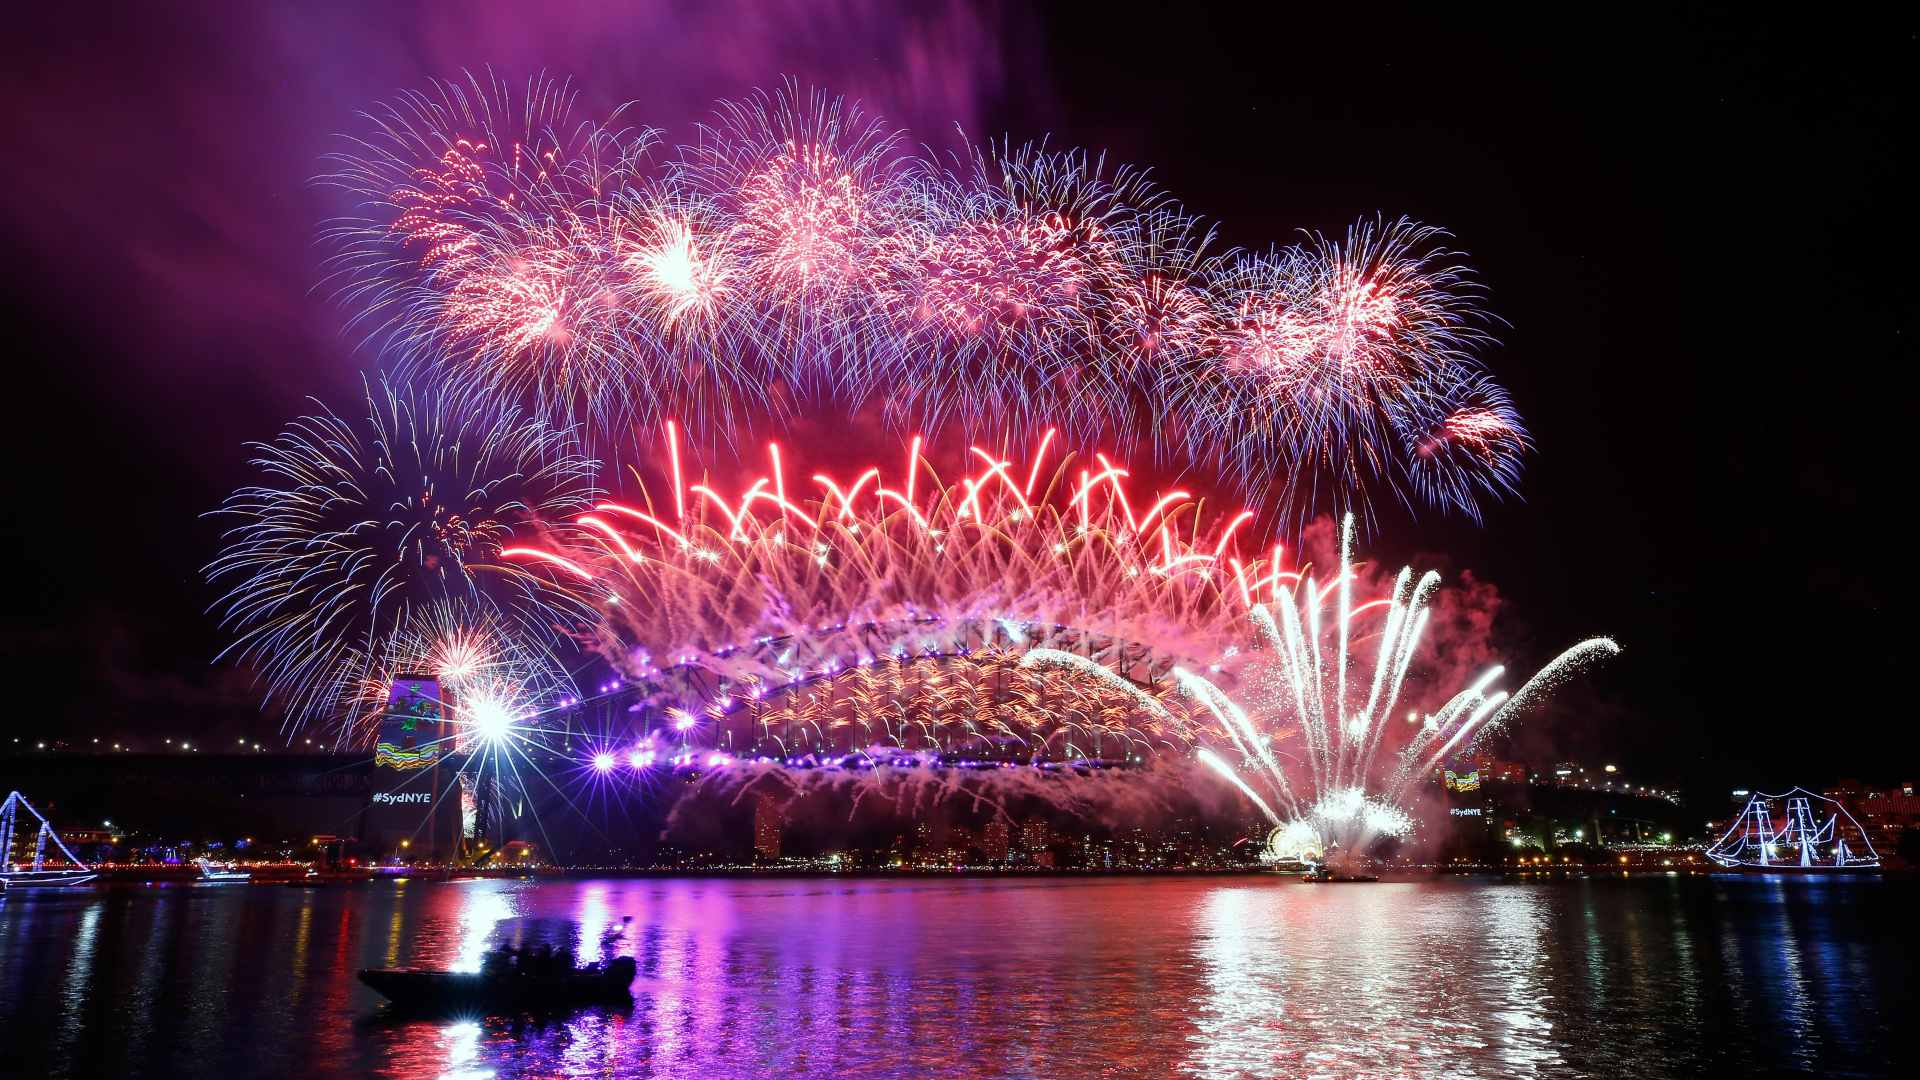 Sydney's 9pm New Year's Eve Fireworks Have Been Cancelled for the Second Year in a Row